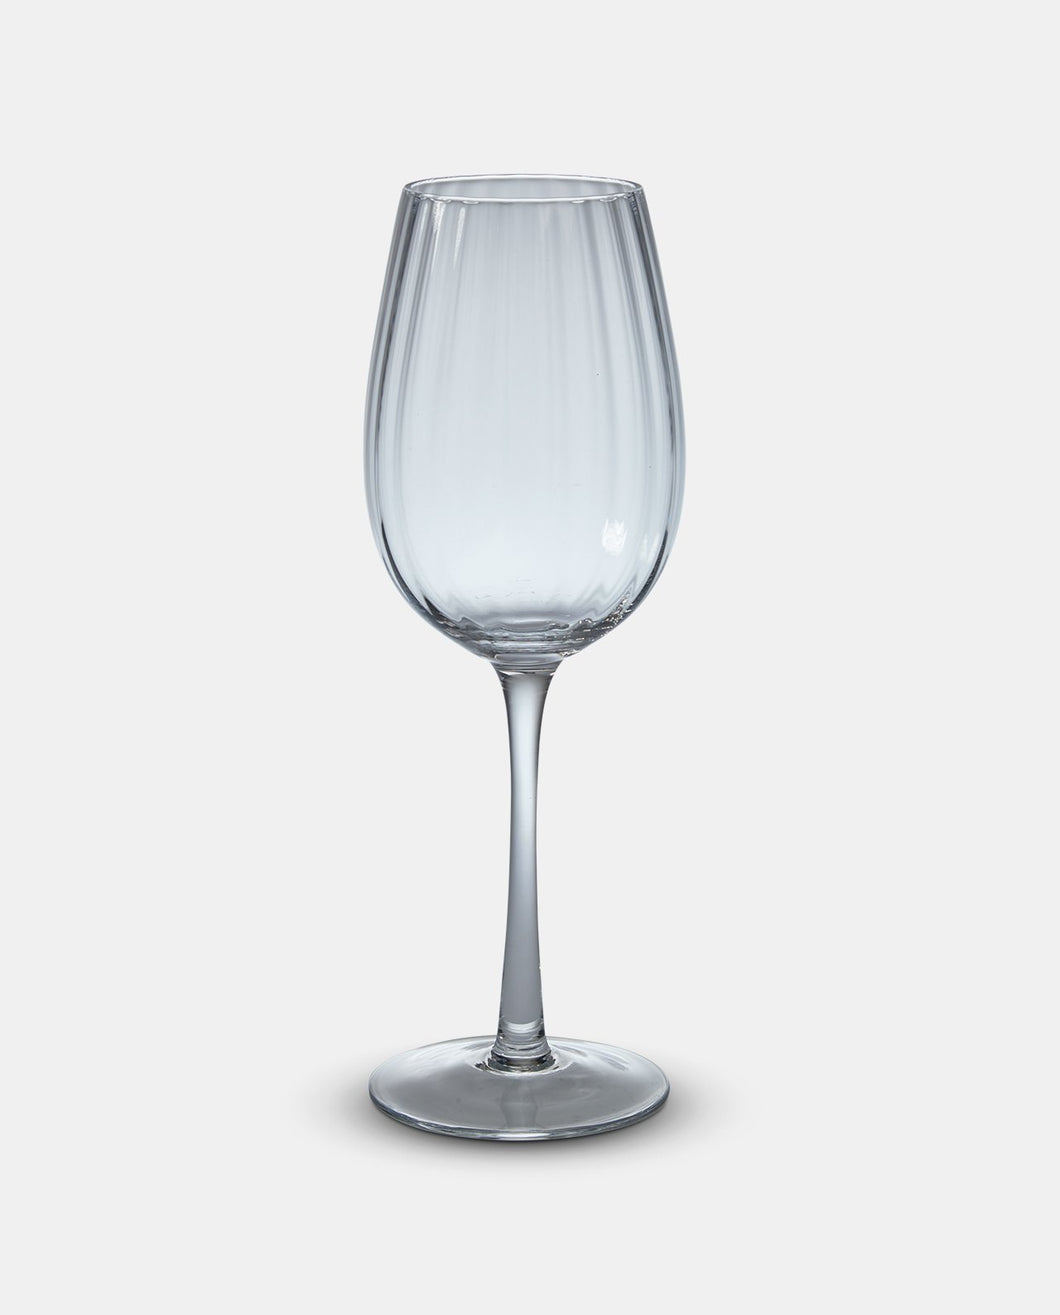 Gallia White Wine Glass - Willow and Grey Interiors